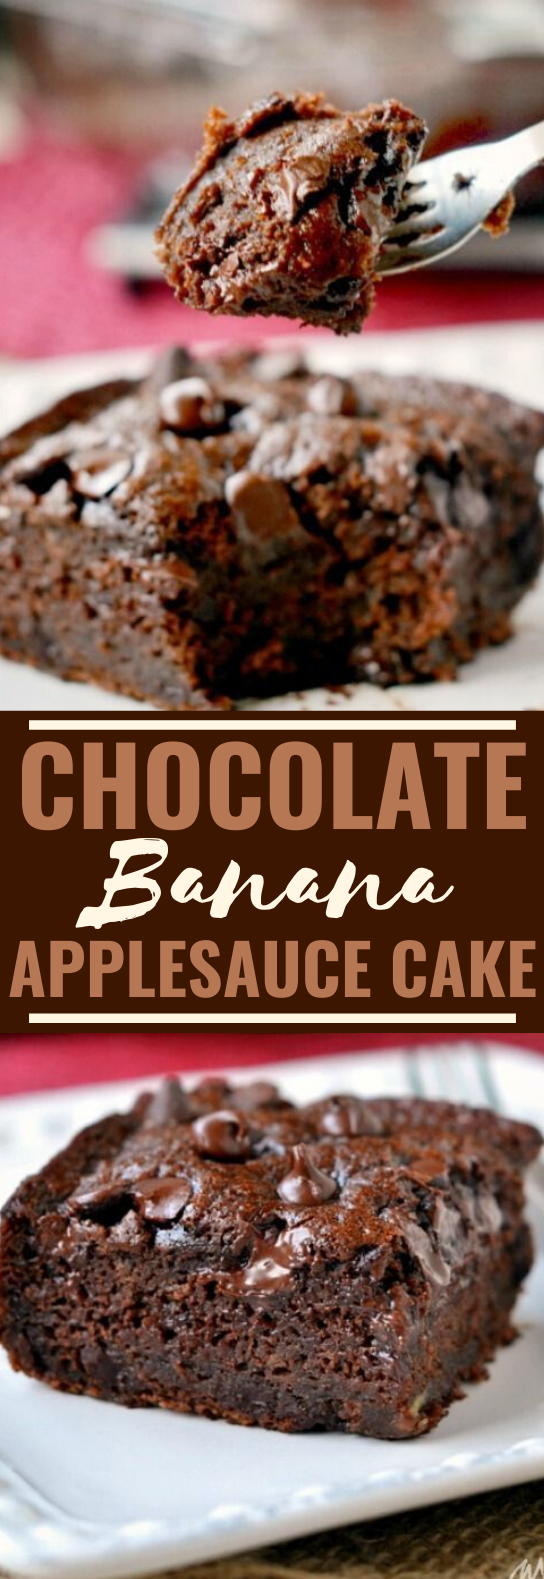 Chocolate Banana Applesauce Cake #cake #recipes #baking #brownies #desserts